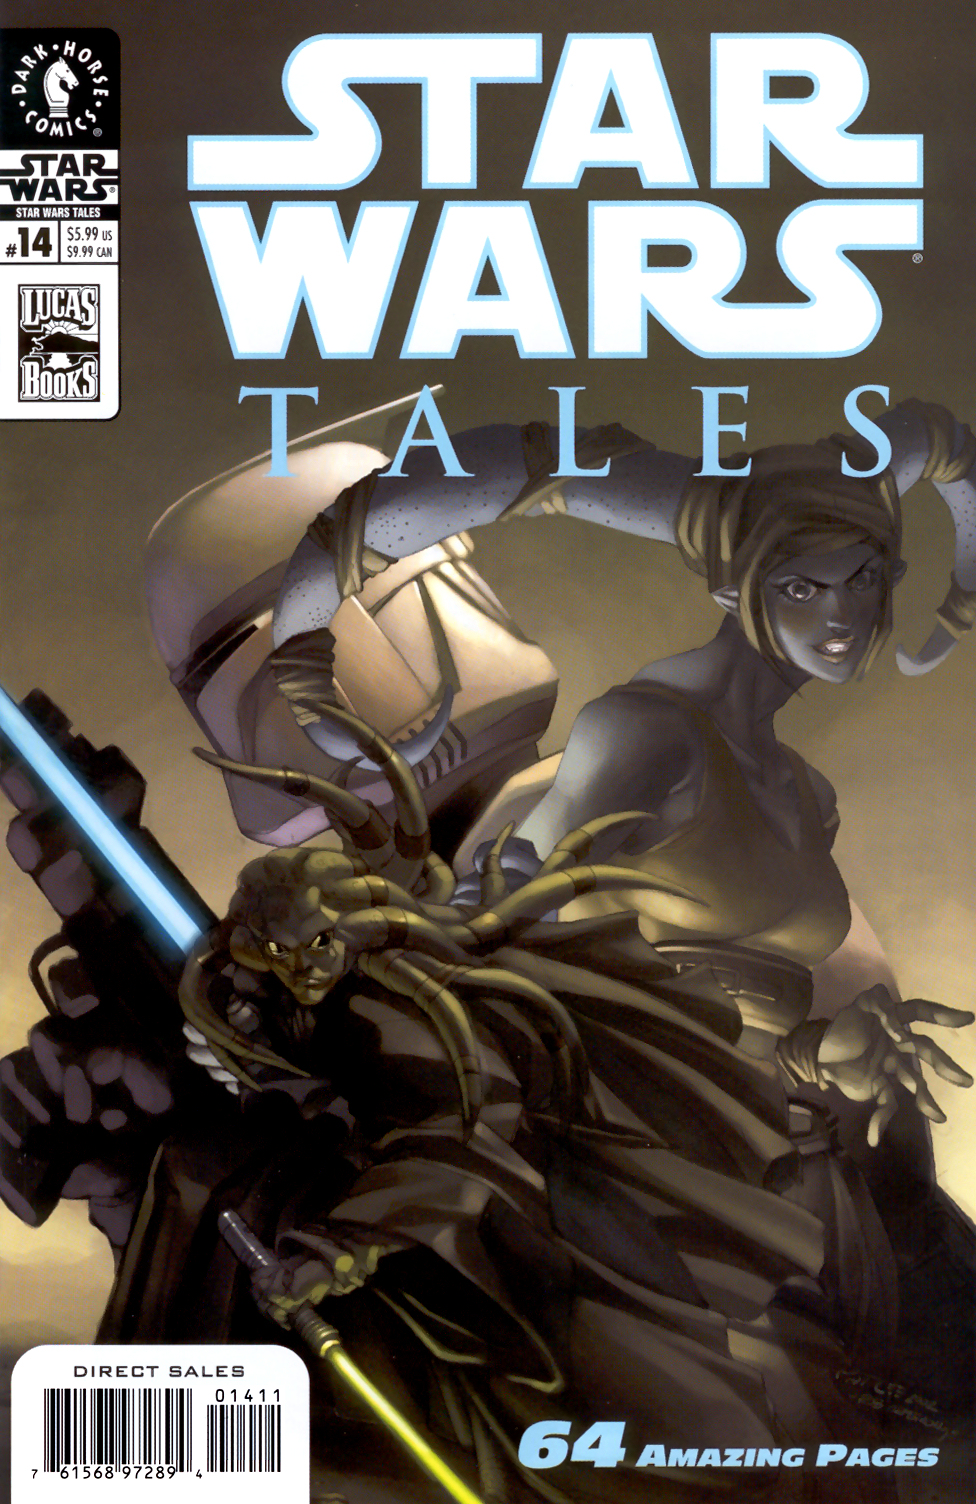 Star Wars Tales: Mythology